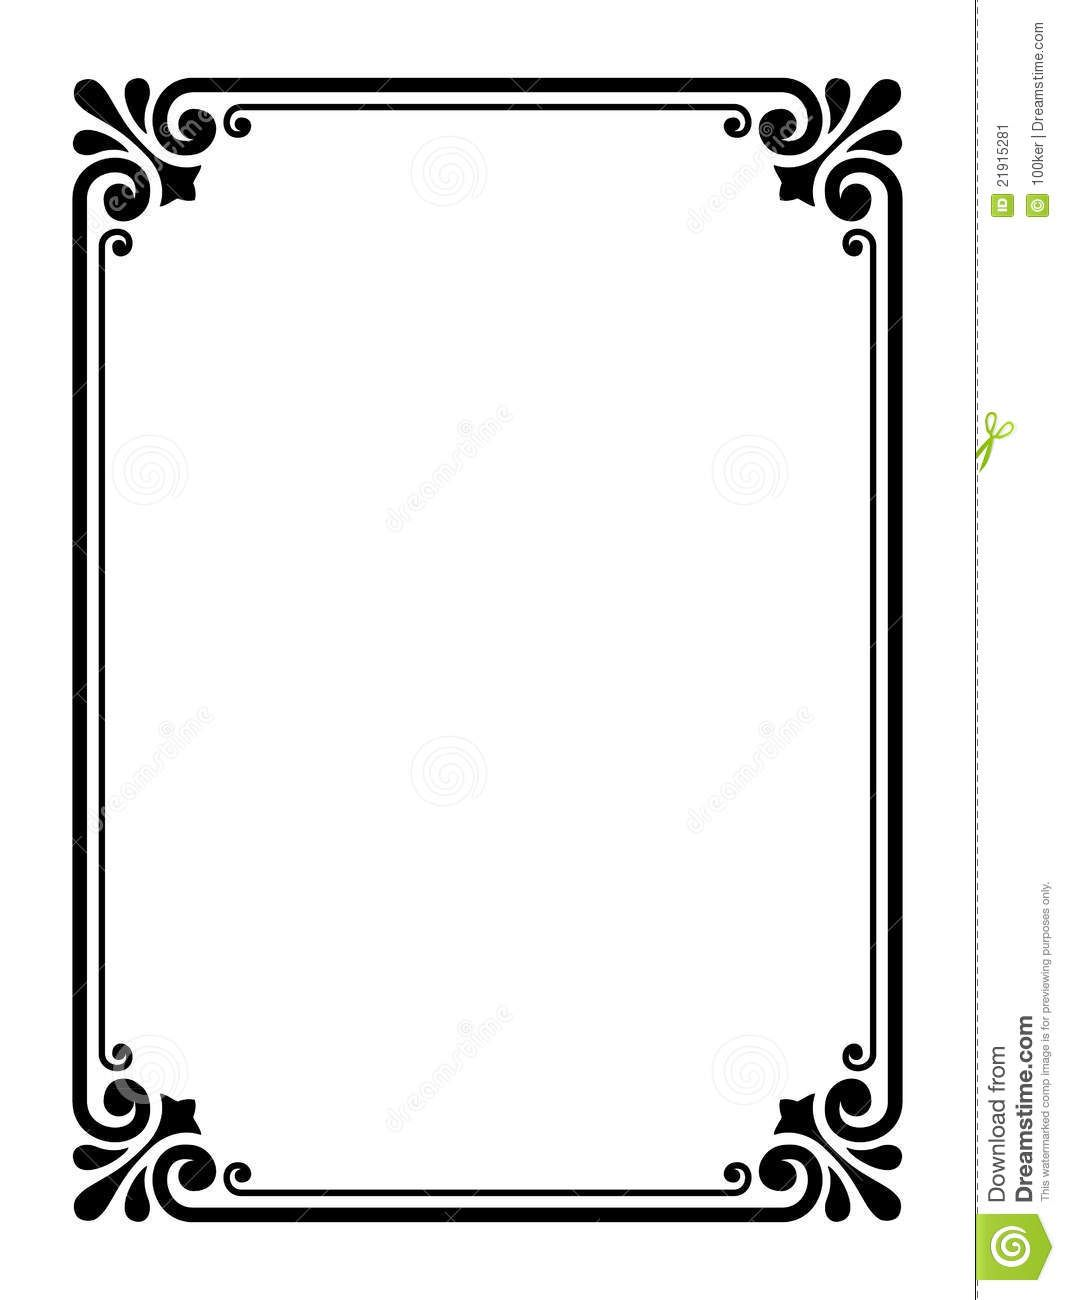 Simple borders designs frame and frames for paper also clipart kid house ideas border rh tr pinterest